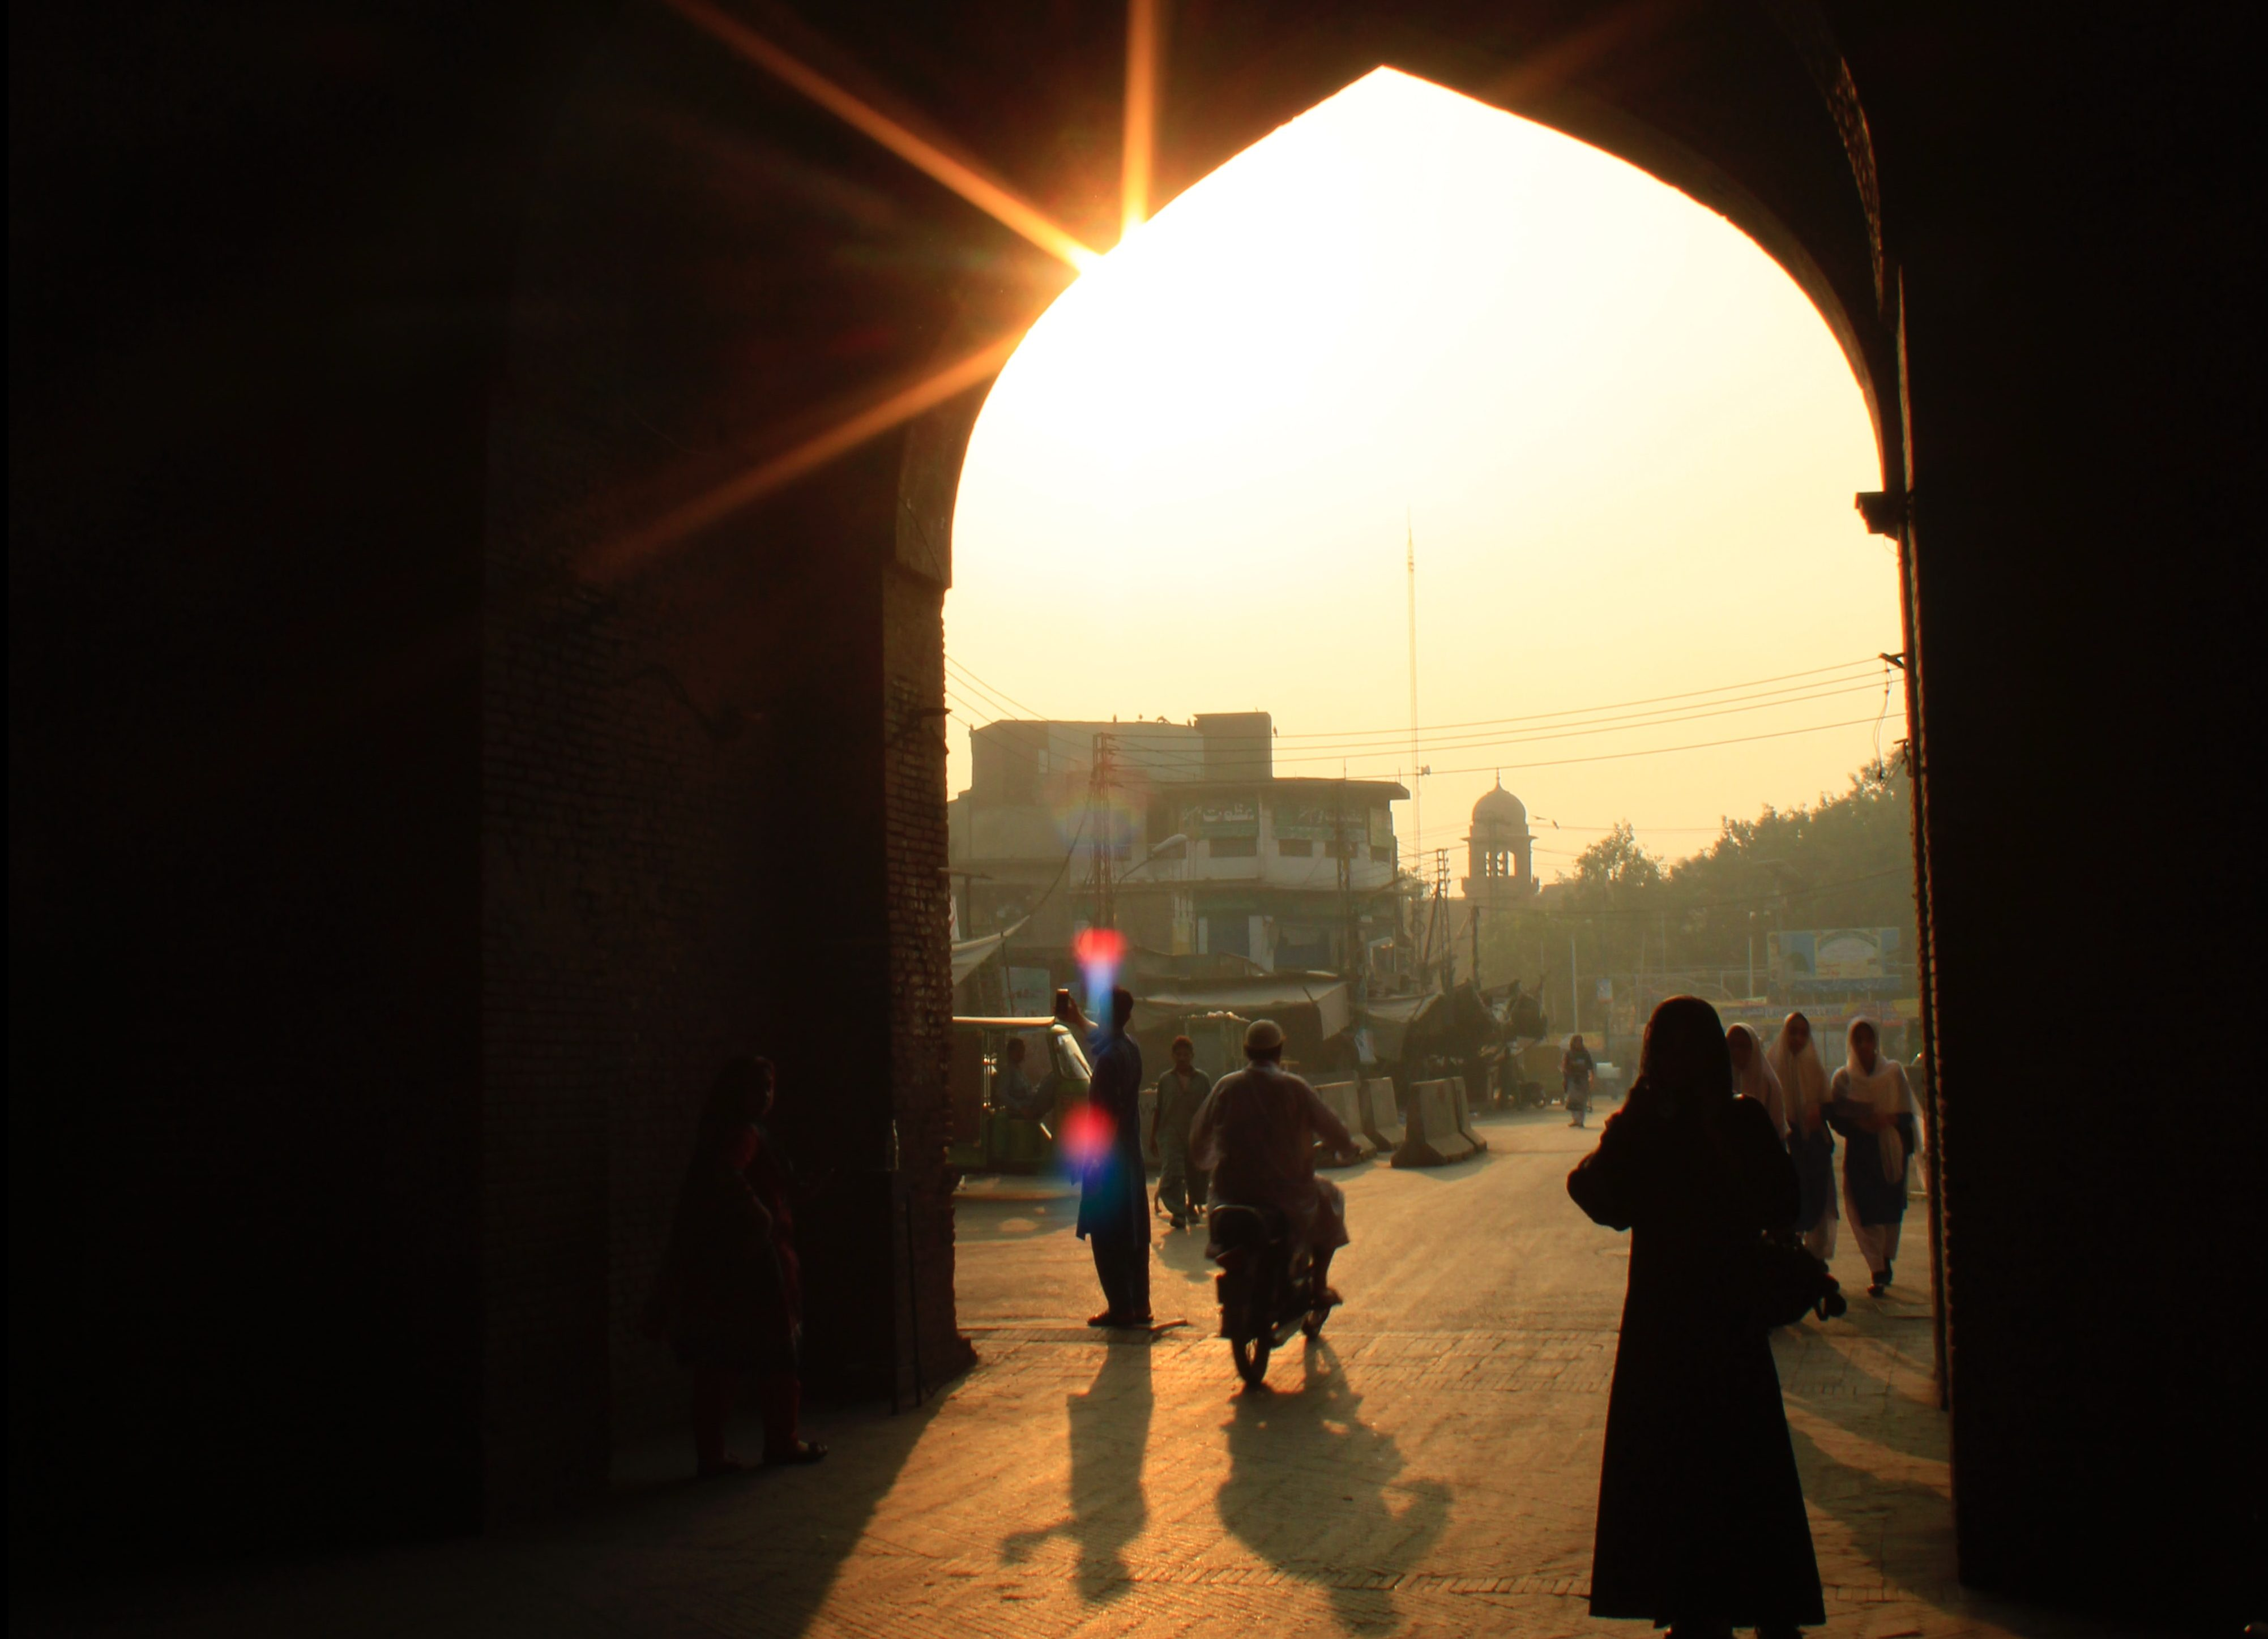 Hundreds of Minority Children Kidnapped in Pakistan Every Year–FMI Urges Prayer that the Gospel will Change Hearts in Pakistan